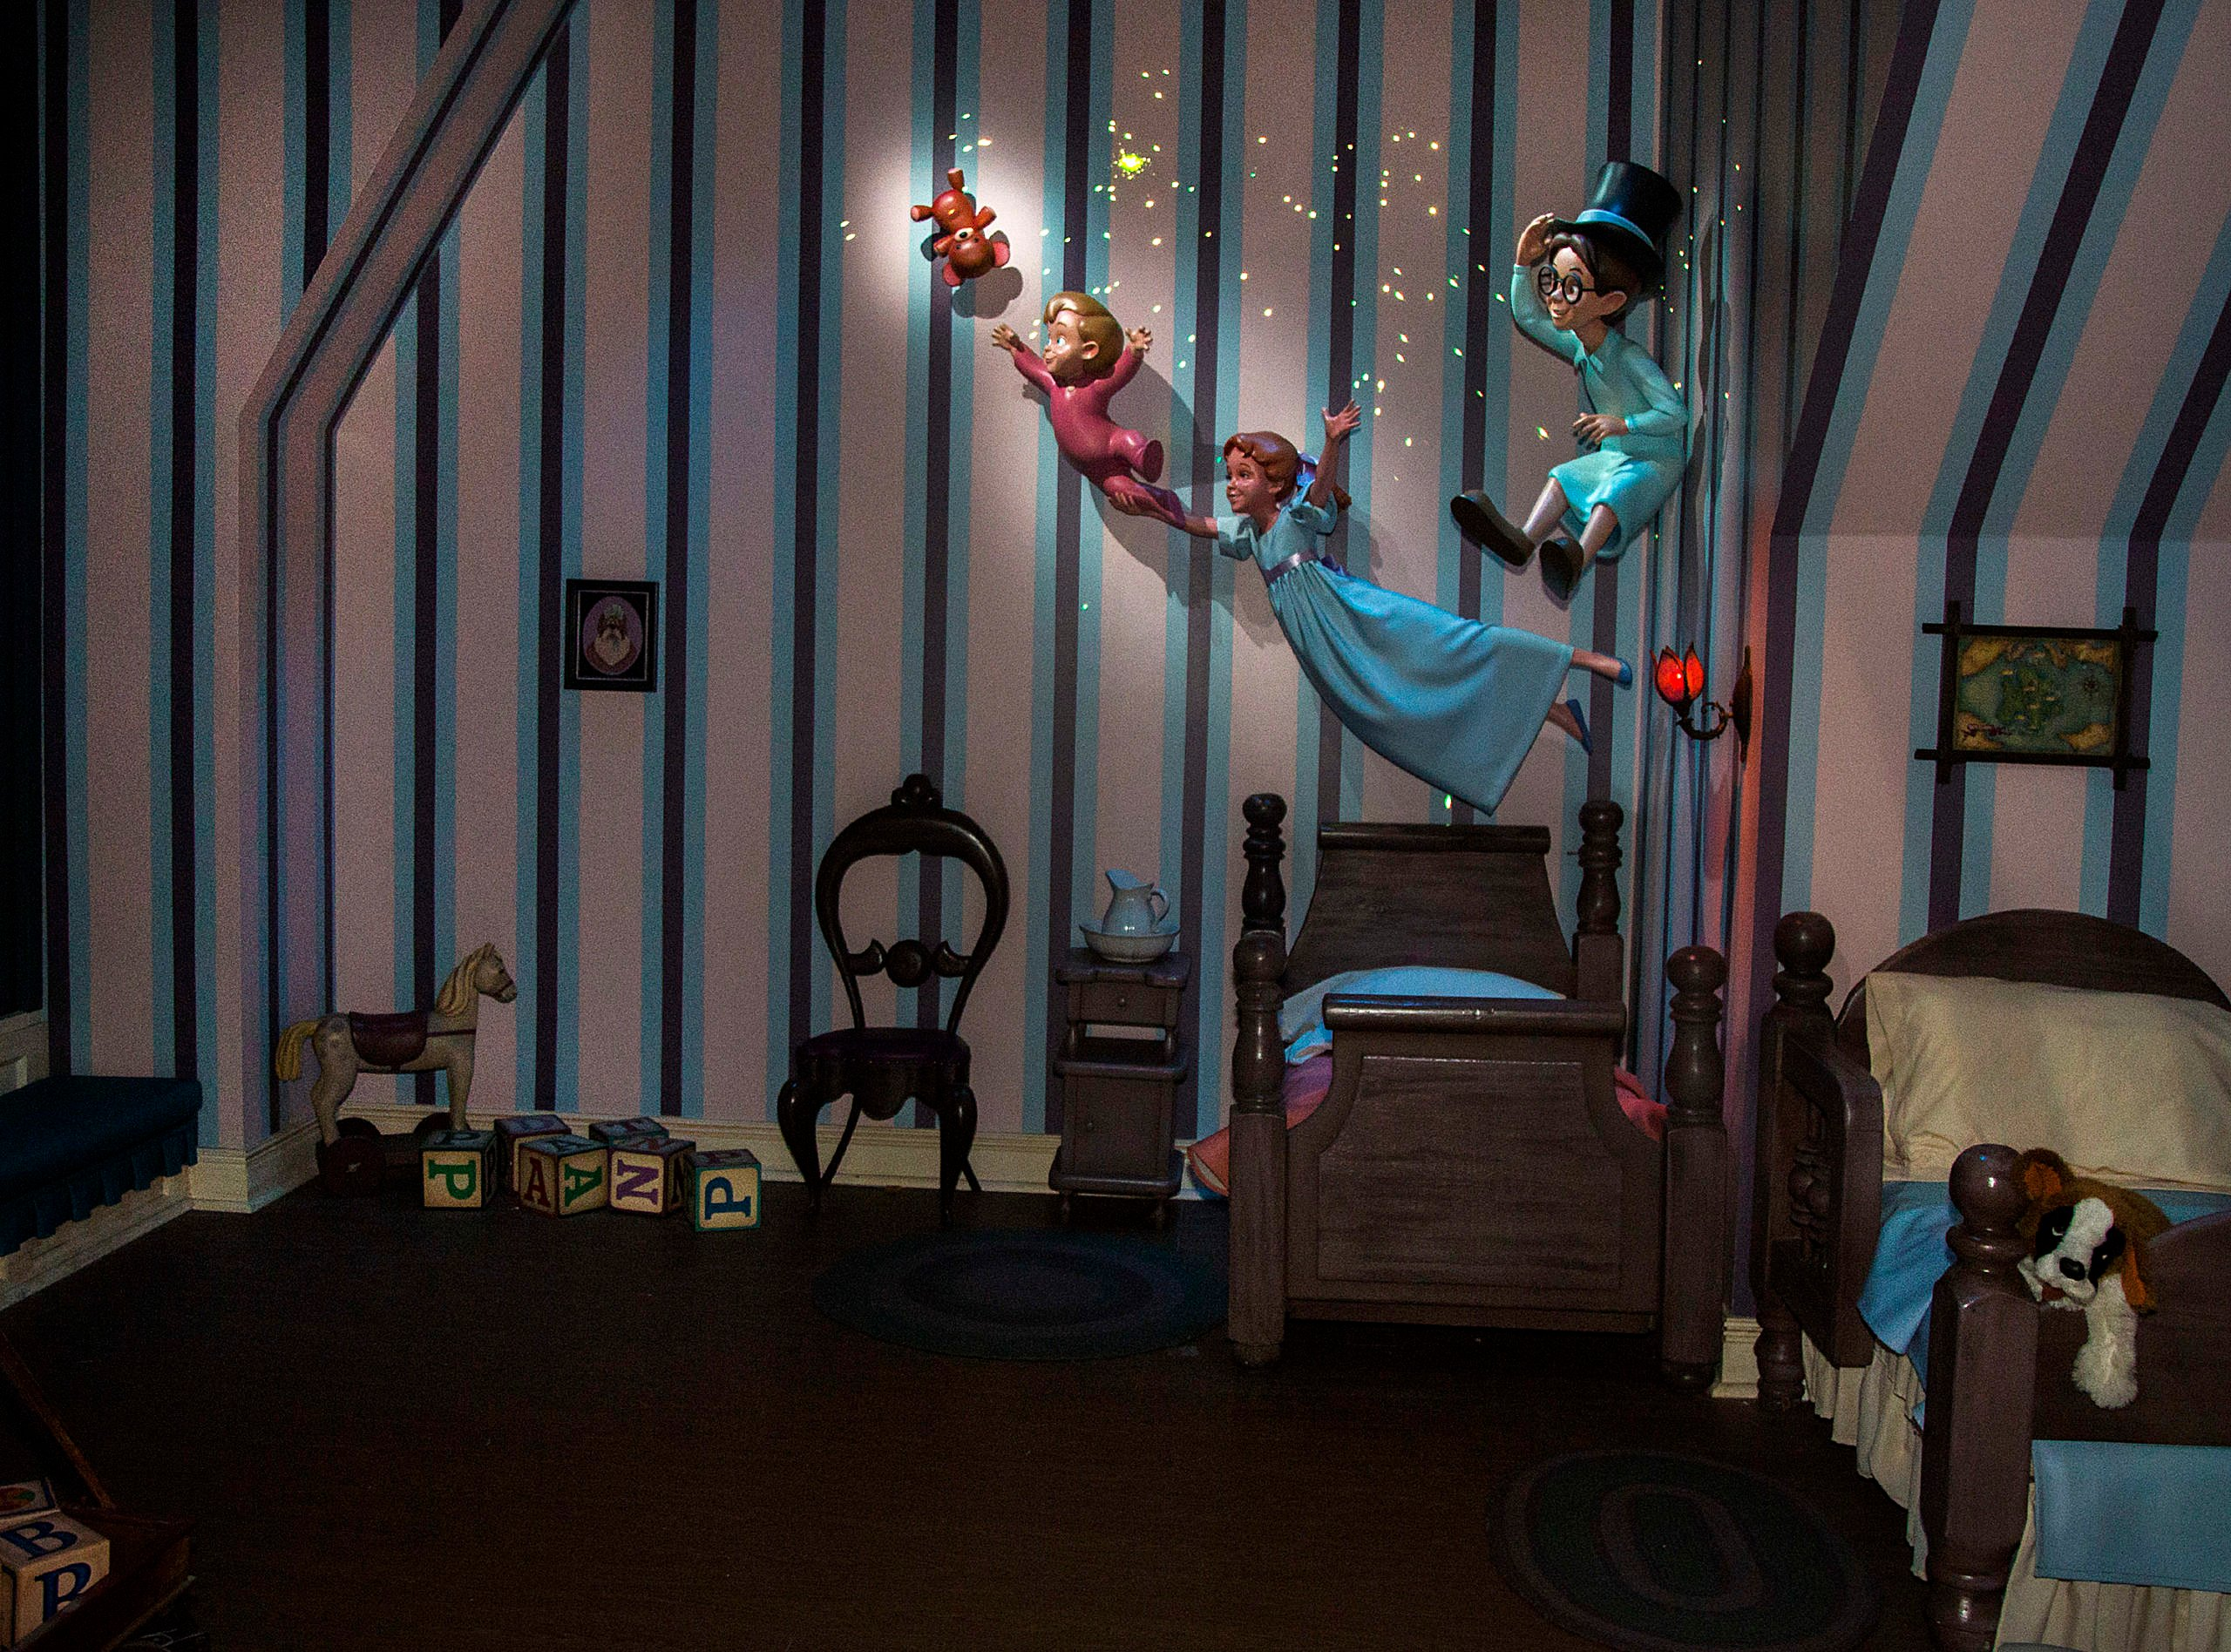 Peter Pan's Flight at Disneyland